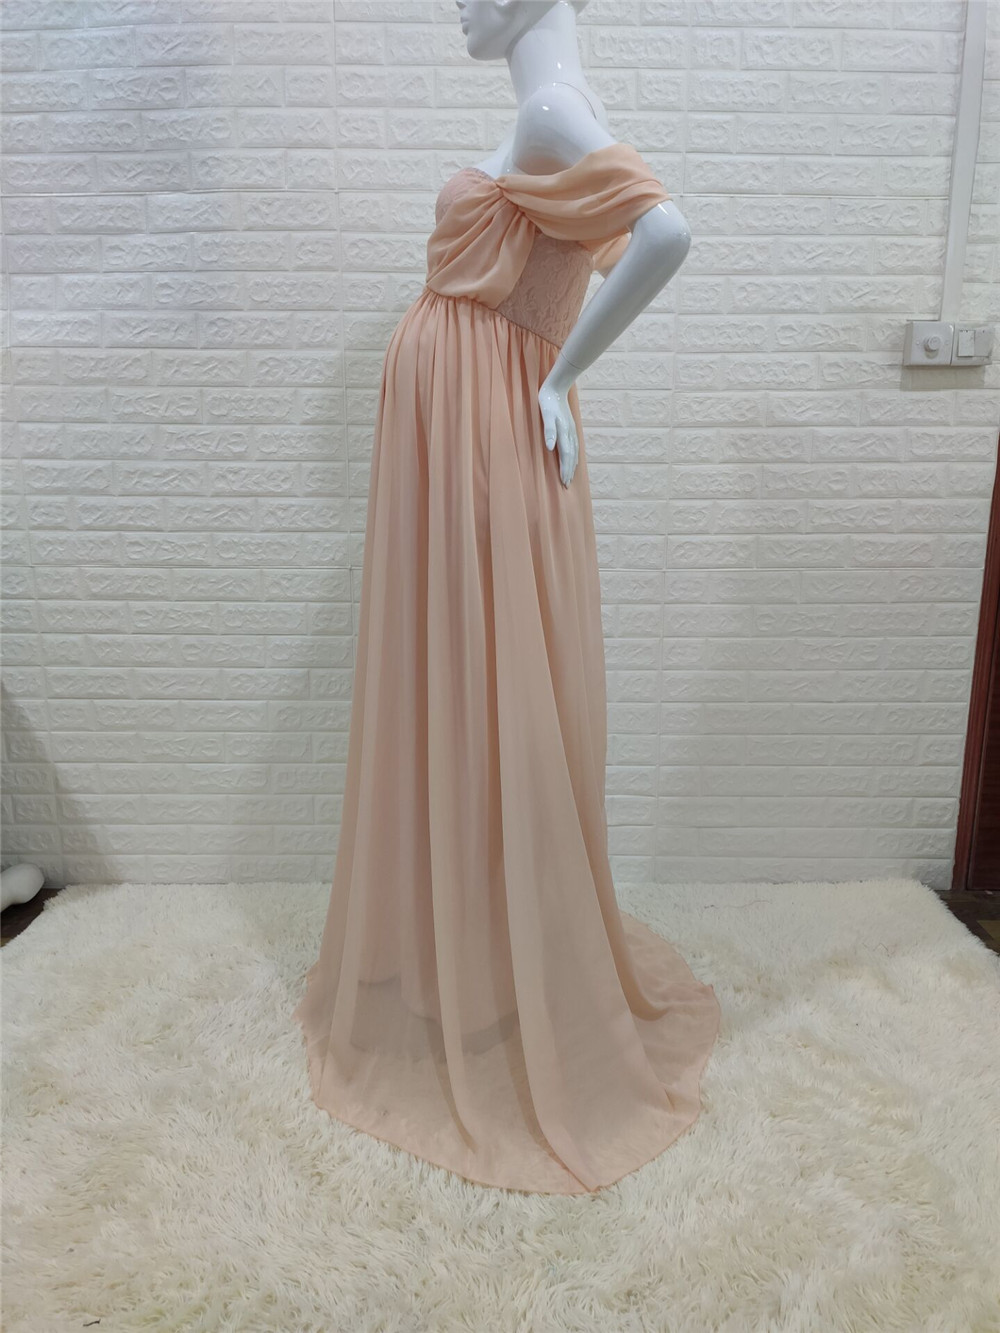 Shoulderless Sexy Maternity Dress Photo Shoot Long Pregnancy Dresses Photography Props Lace Chiffon Maxi Gown For Pregnant Women (24)